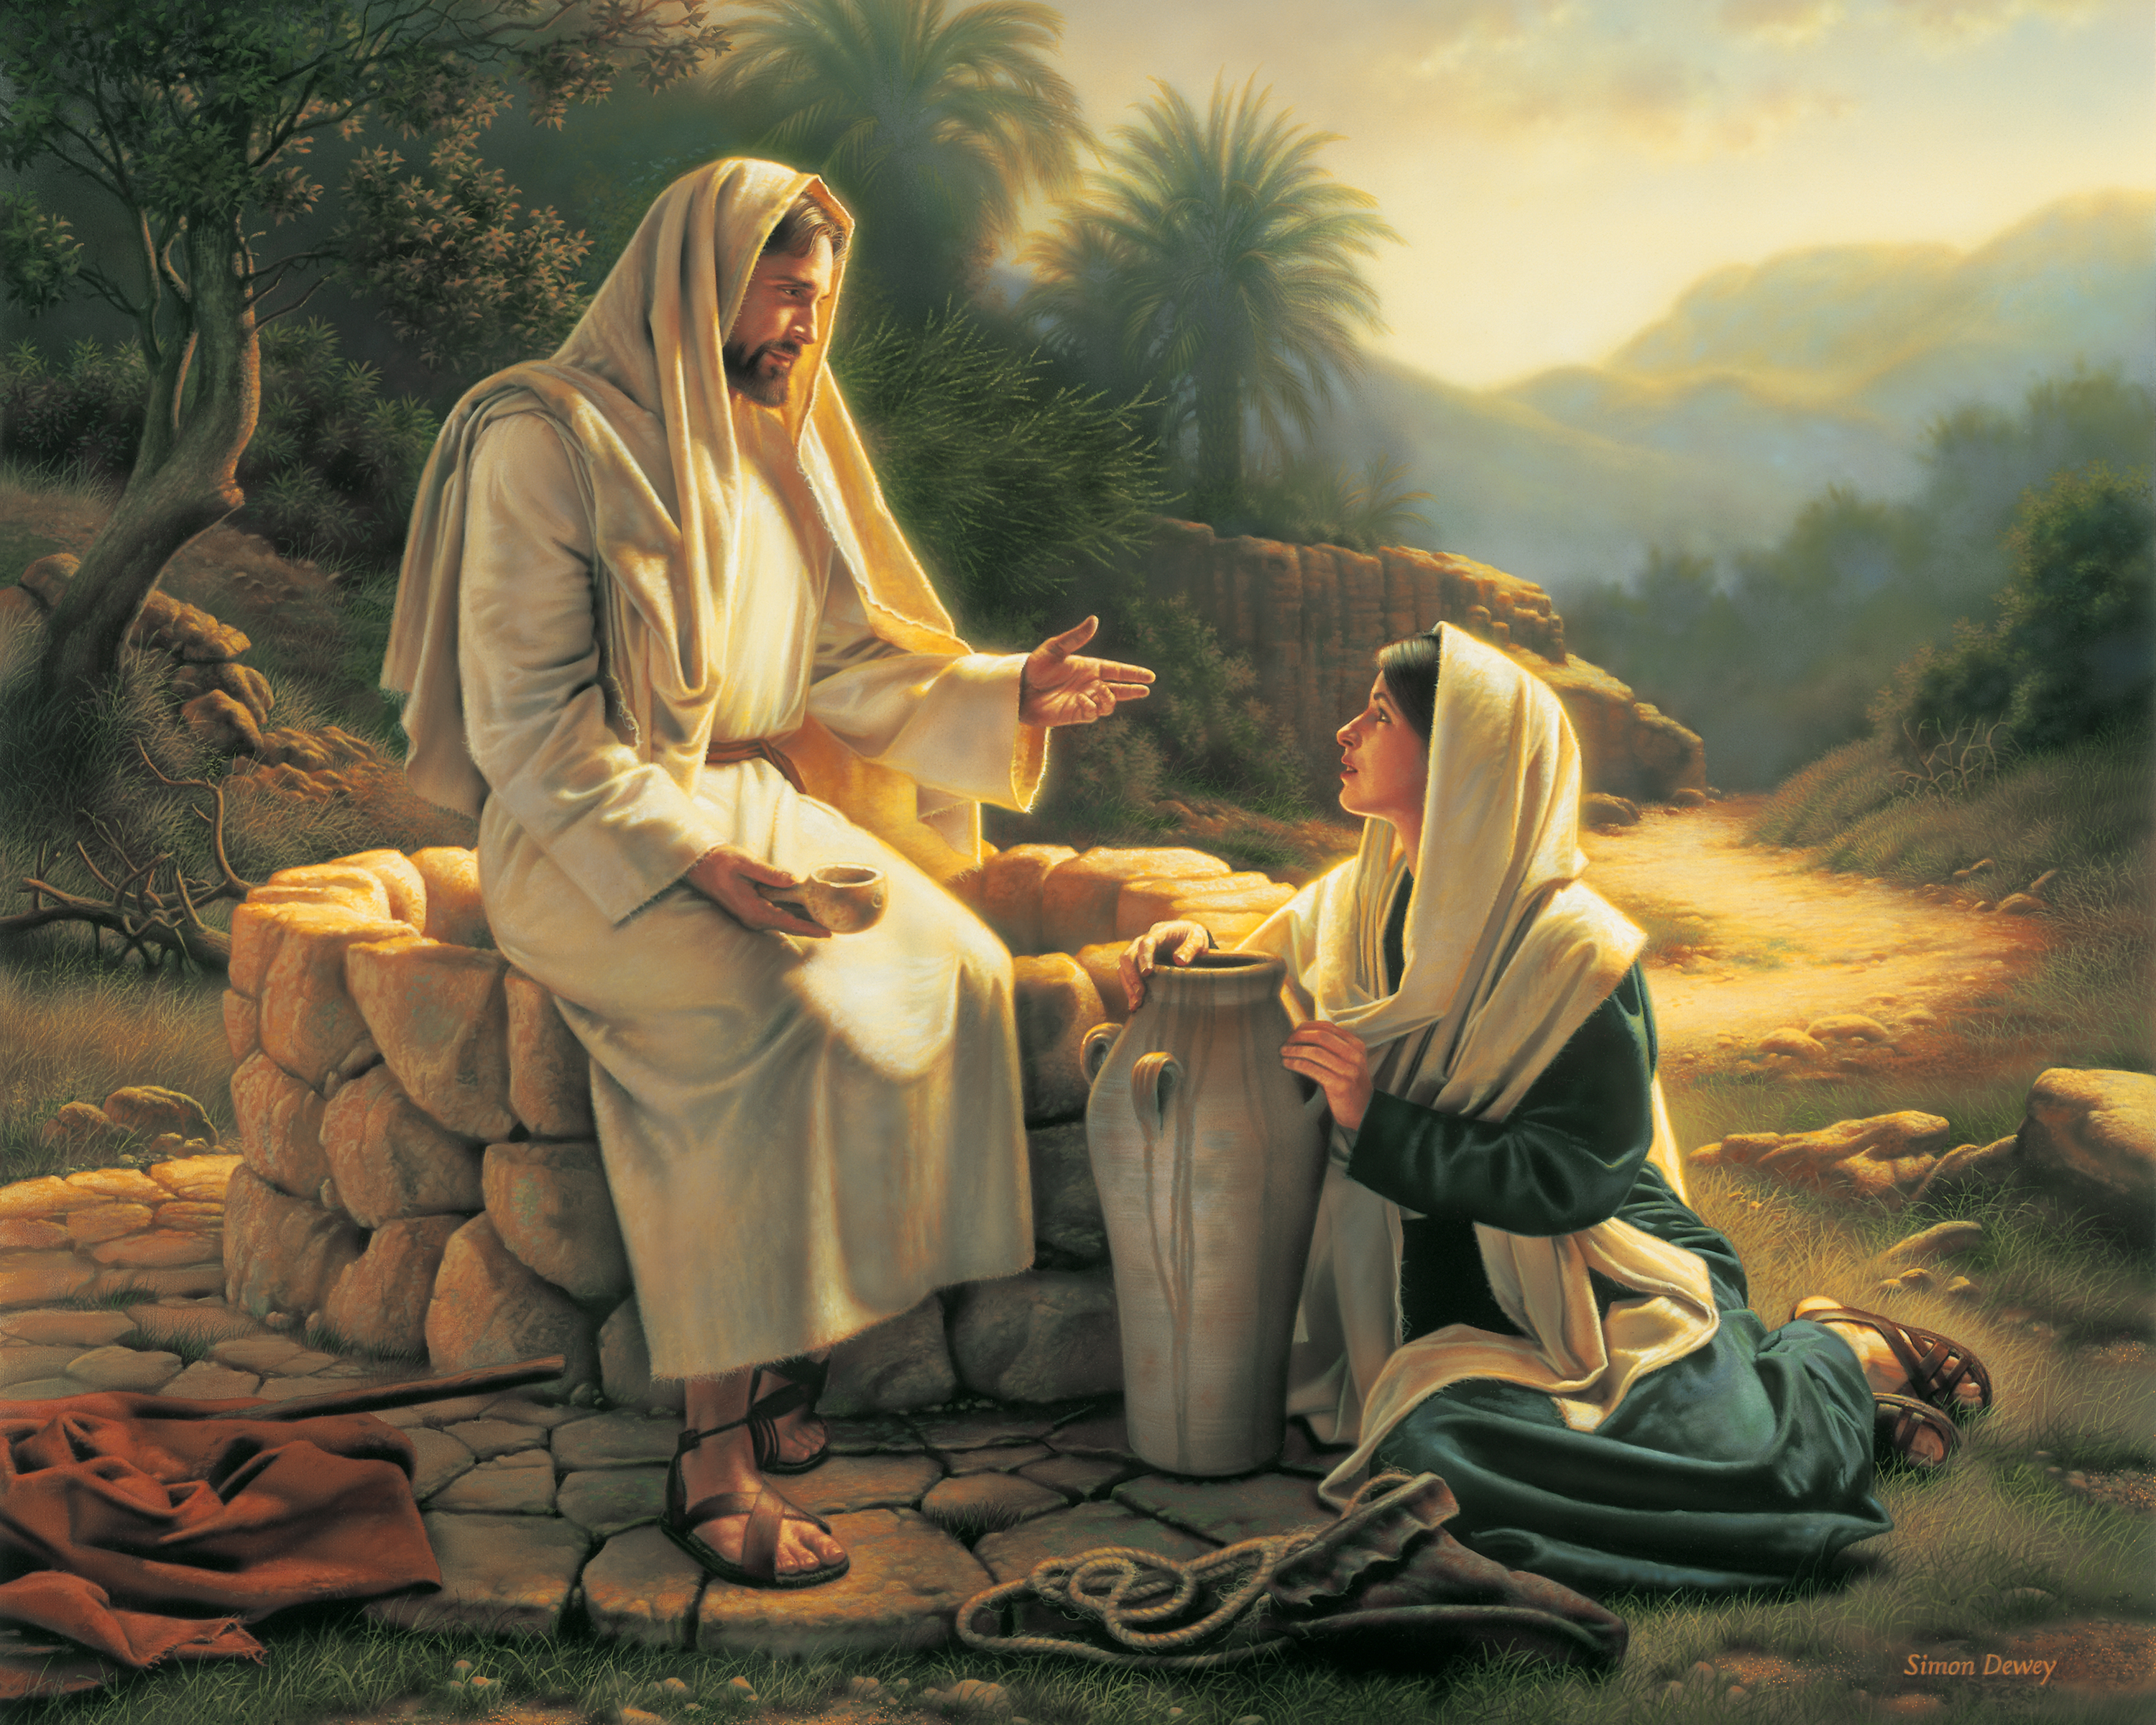 true freedom comes by faith in the teachings of jesus christ The beliefs and teaching of christianity christianity is centered on the person and teachings of jesus of faith in christ brings gifts, such as freedom.